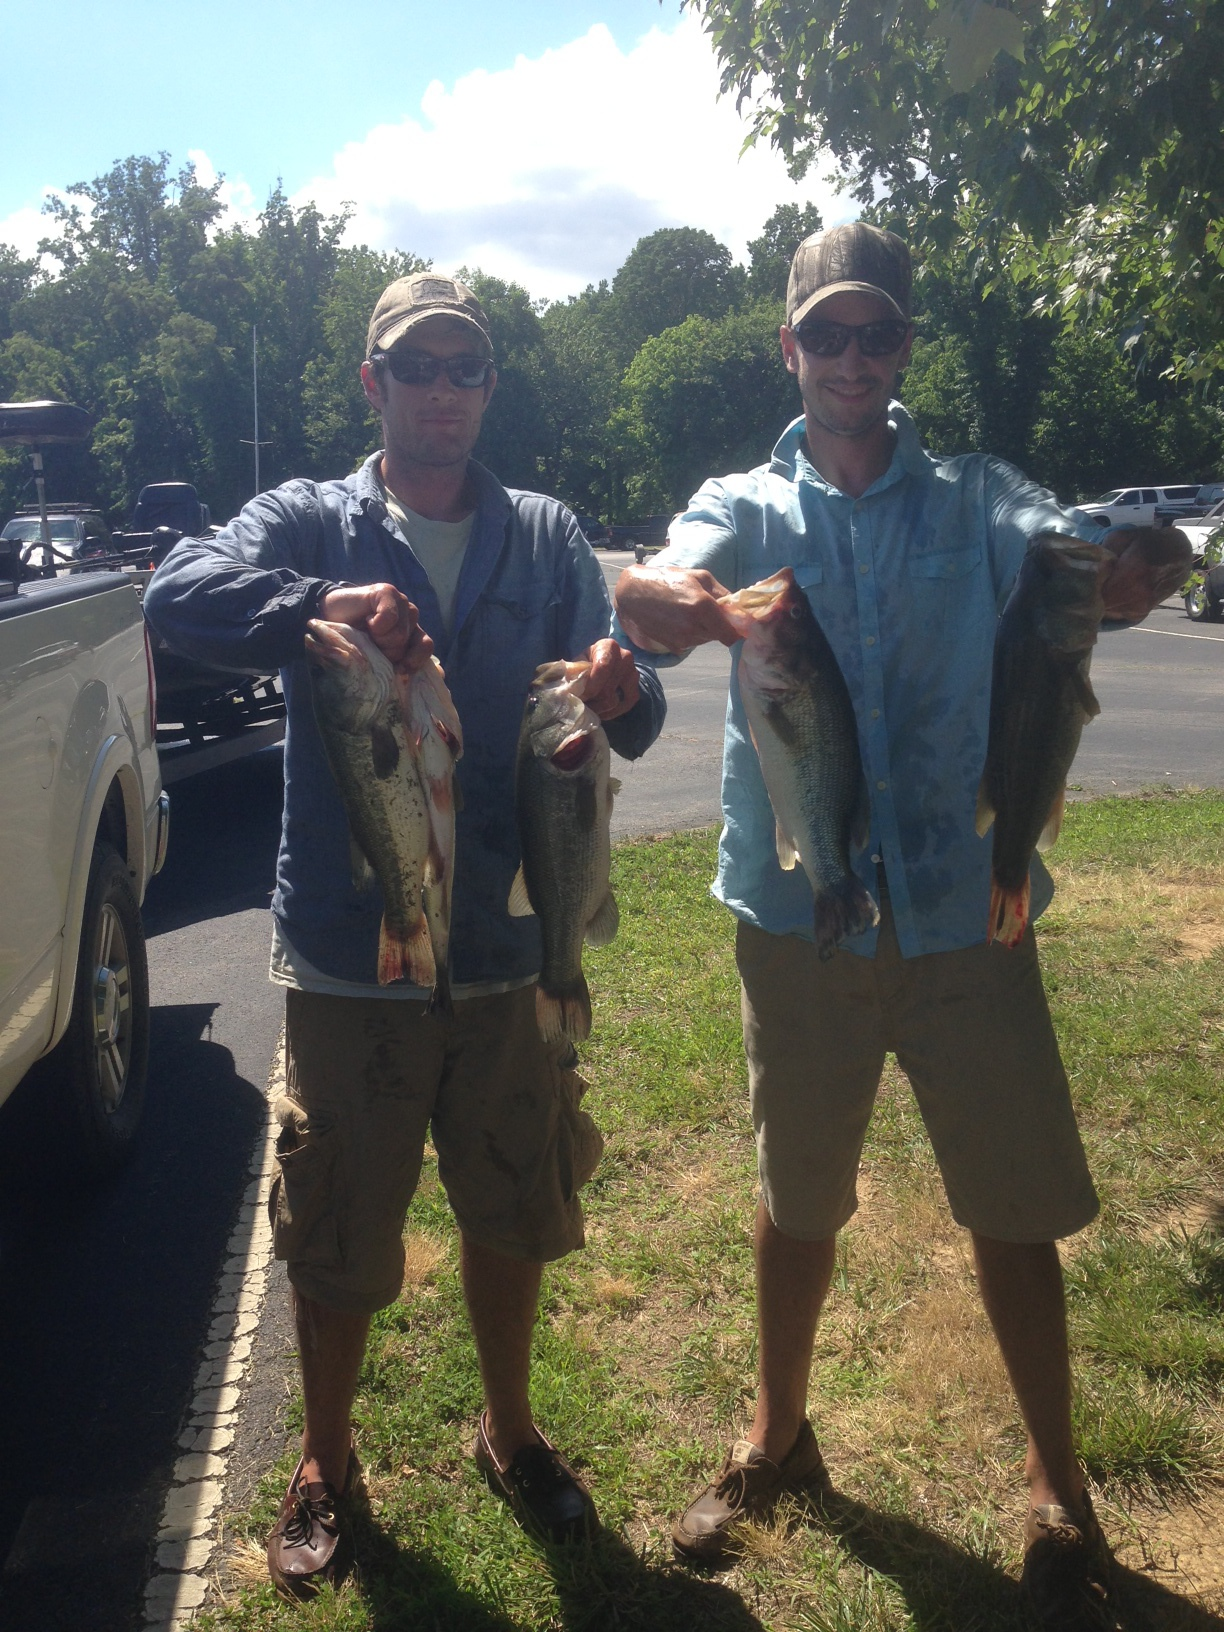 Daniel Rohrig and Ben Snyder Sixth Place   11.29 lbs